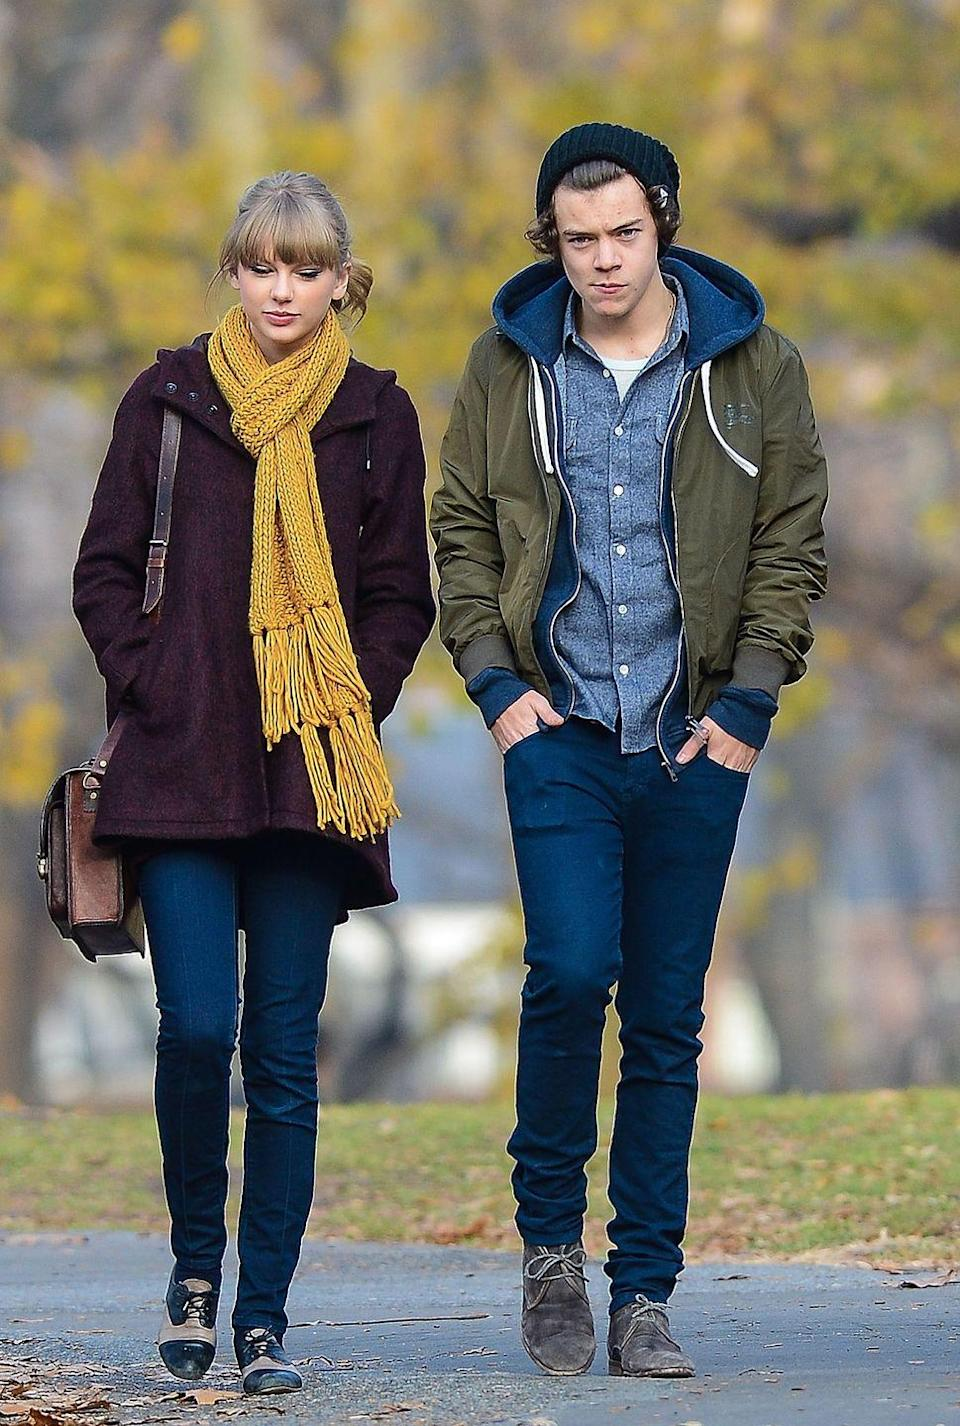 "<p>Besides writing songs about Harry (""I Knew You Were Trouble,"" ""Style,"" to name a couple) Taylor also delivered performances about her ex-boyfriend. In 2013, Taylor opened the Grammys with ""We Are Never Ever Getting Back Together"" (that one's about Jake Gyllenhaal) with Harry watching in the audience. When it came to the speaking part about him calling her, <a href=""https://www.youtube.com/watch?v=wVFTpNcI2hI"" rel=""nofollow noopener"" target=""_blank"" data-ylk=""slk:Taylor used a British accent"" class=""link rapid-noclick-resp"">Taylor used a British accent</a> and tweaked the lyrics to ""I'm busy opening the Grammys."" Later that year, in her acceptance speech for Best Female Video for ""I Knew You Were Trouble"" at the VMAs, Taylor thanked ""the person who inspired this song, who knows exactly who he is, because now I got one of these. Thank you so much!"" (This is also the <a href=""https://www.huffingtonpost.com/2013/08/25/taylor-swift-harry-styles-vmas-shut-the-fuck-up_n_3814782.html"" rel=""nofollow noopener"" target=""_blank"" data-ylk=""slk:same ceremony"" class=""link rapid-noclick-resp"">same ceremony</a> where she was caught mumbling ""Shut the fuck up"" during 1D's acceptance speech.)</p>"